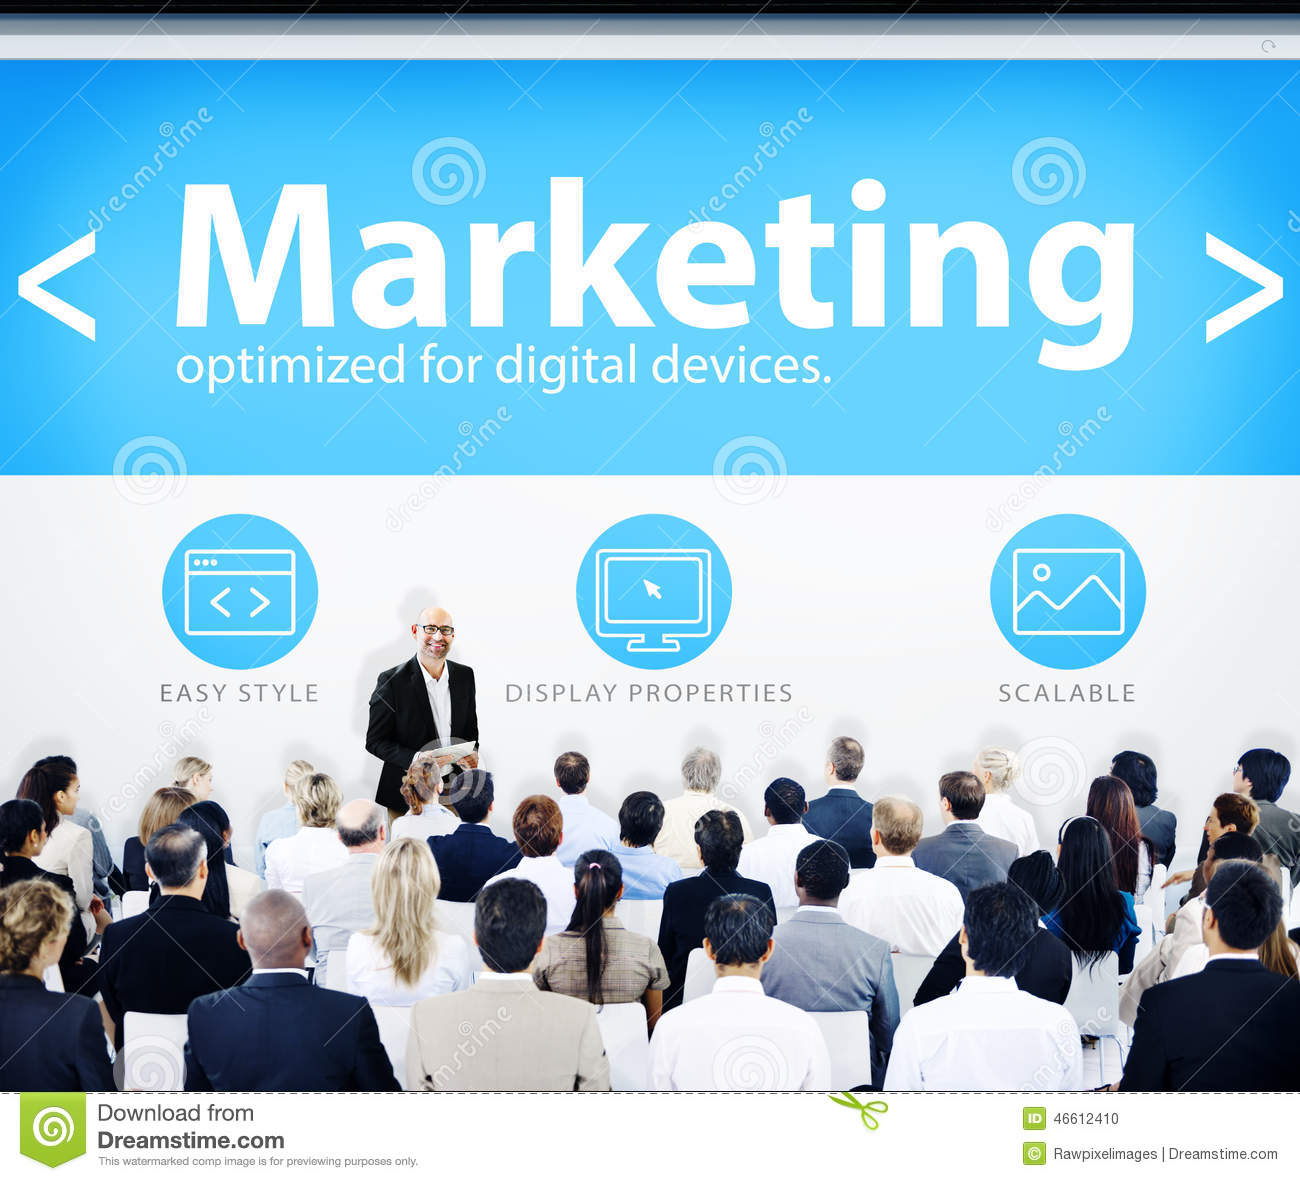 Business People Marketing Presentation Concepts Photo – Marketing Presentation